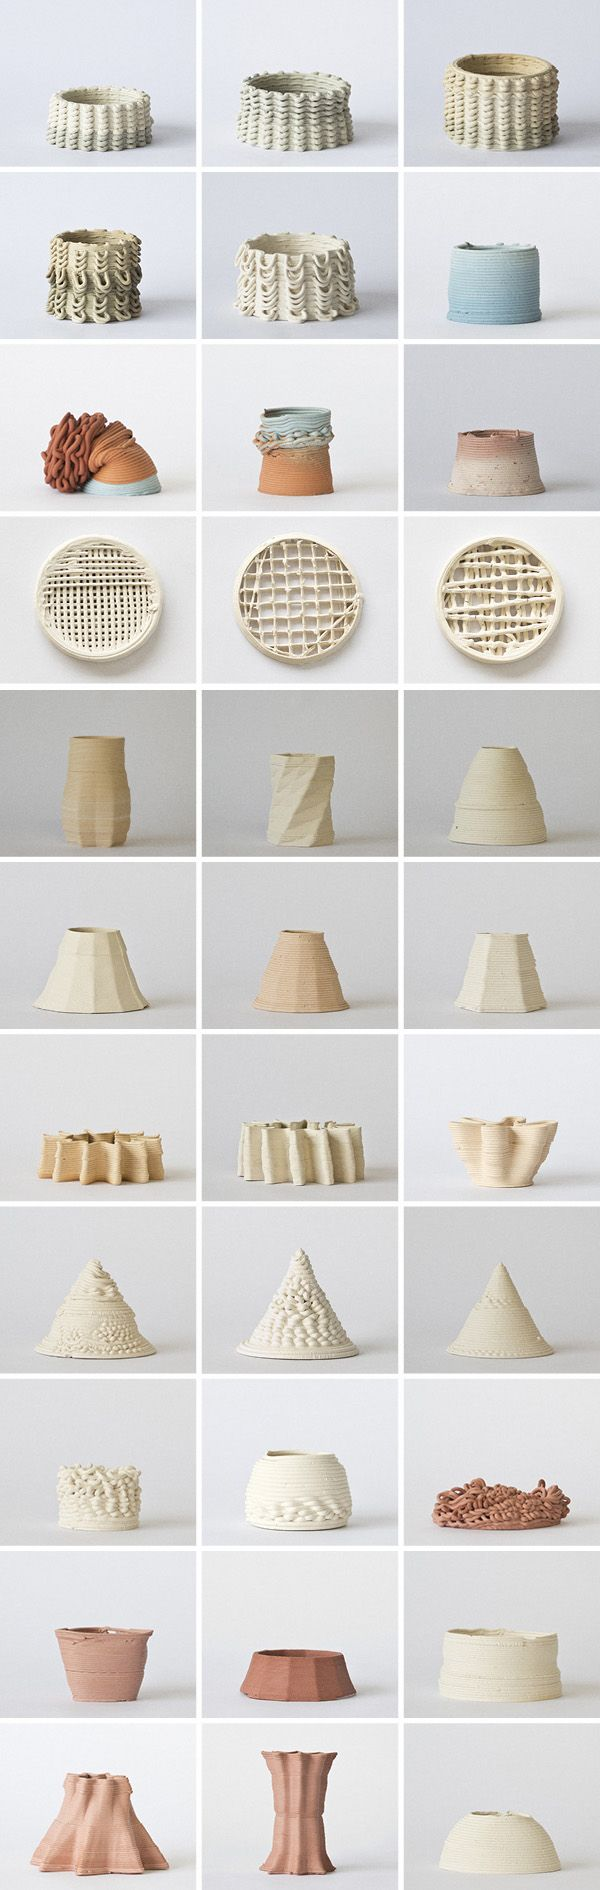 Study of form and trial manufacturing | 3D printed ceramics